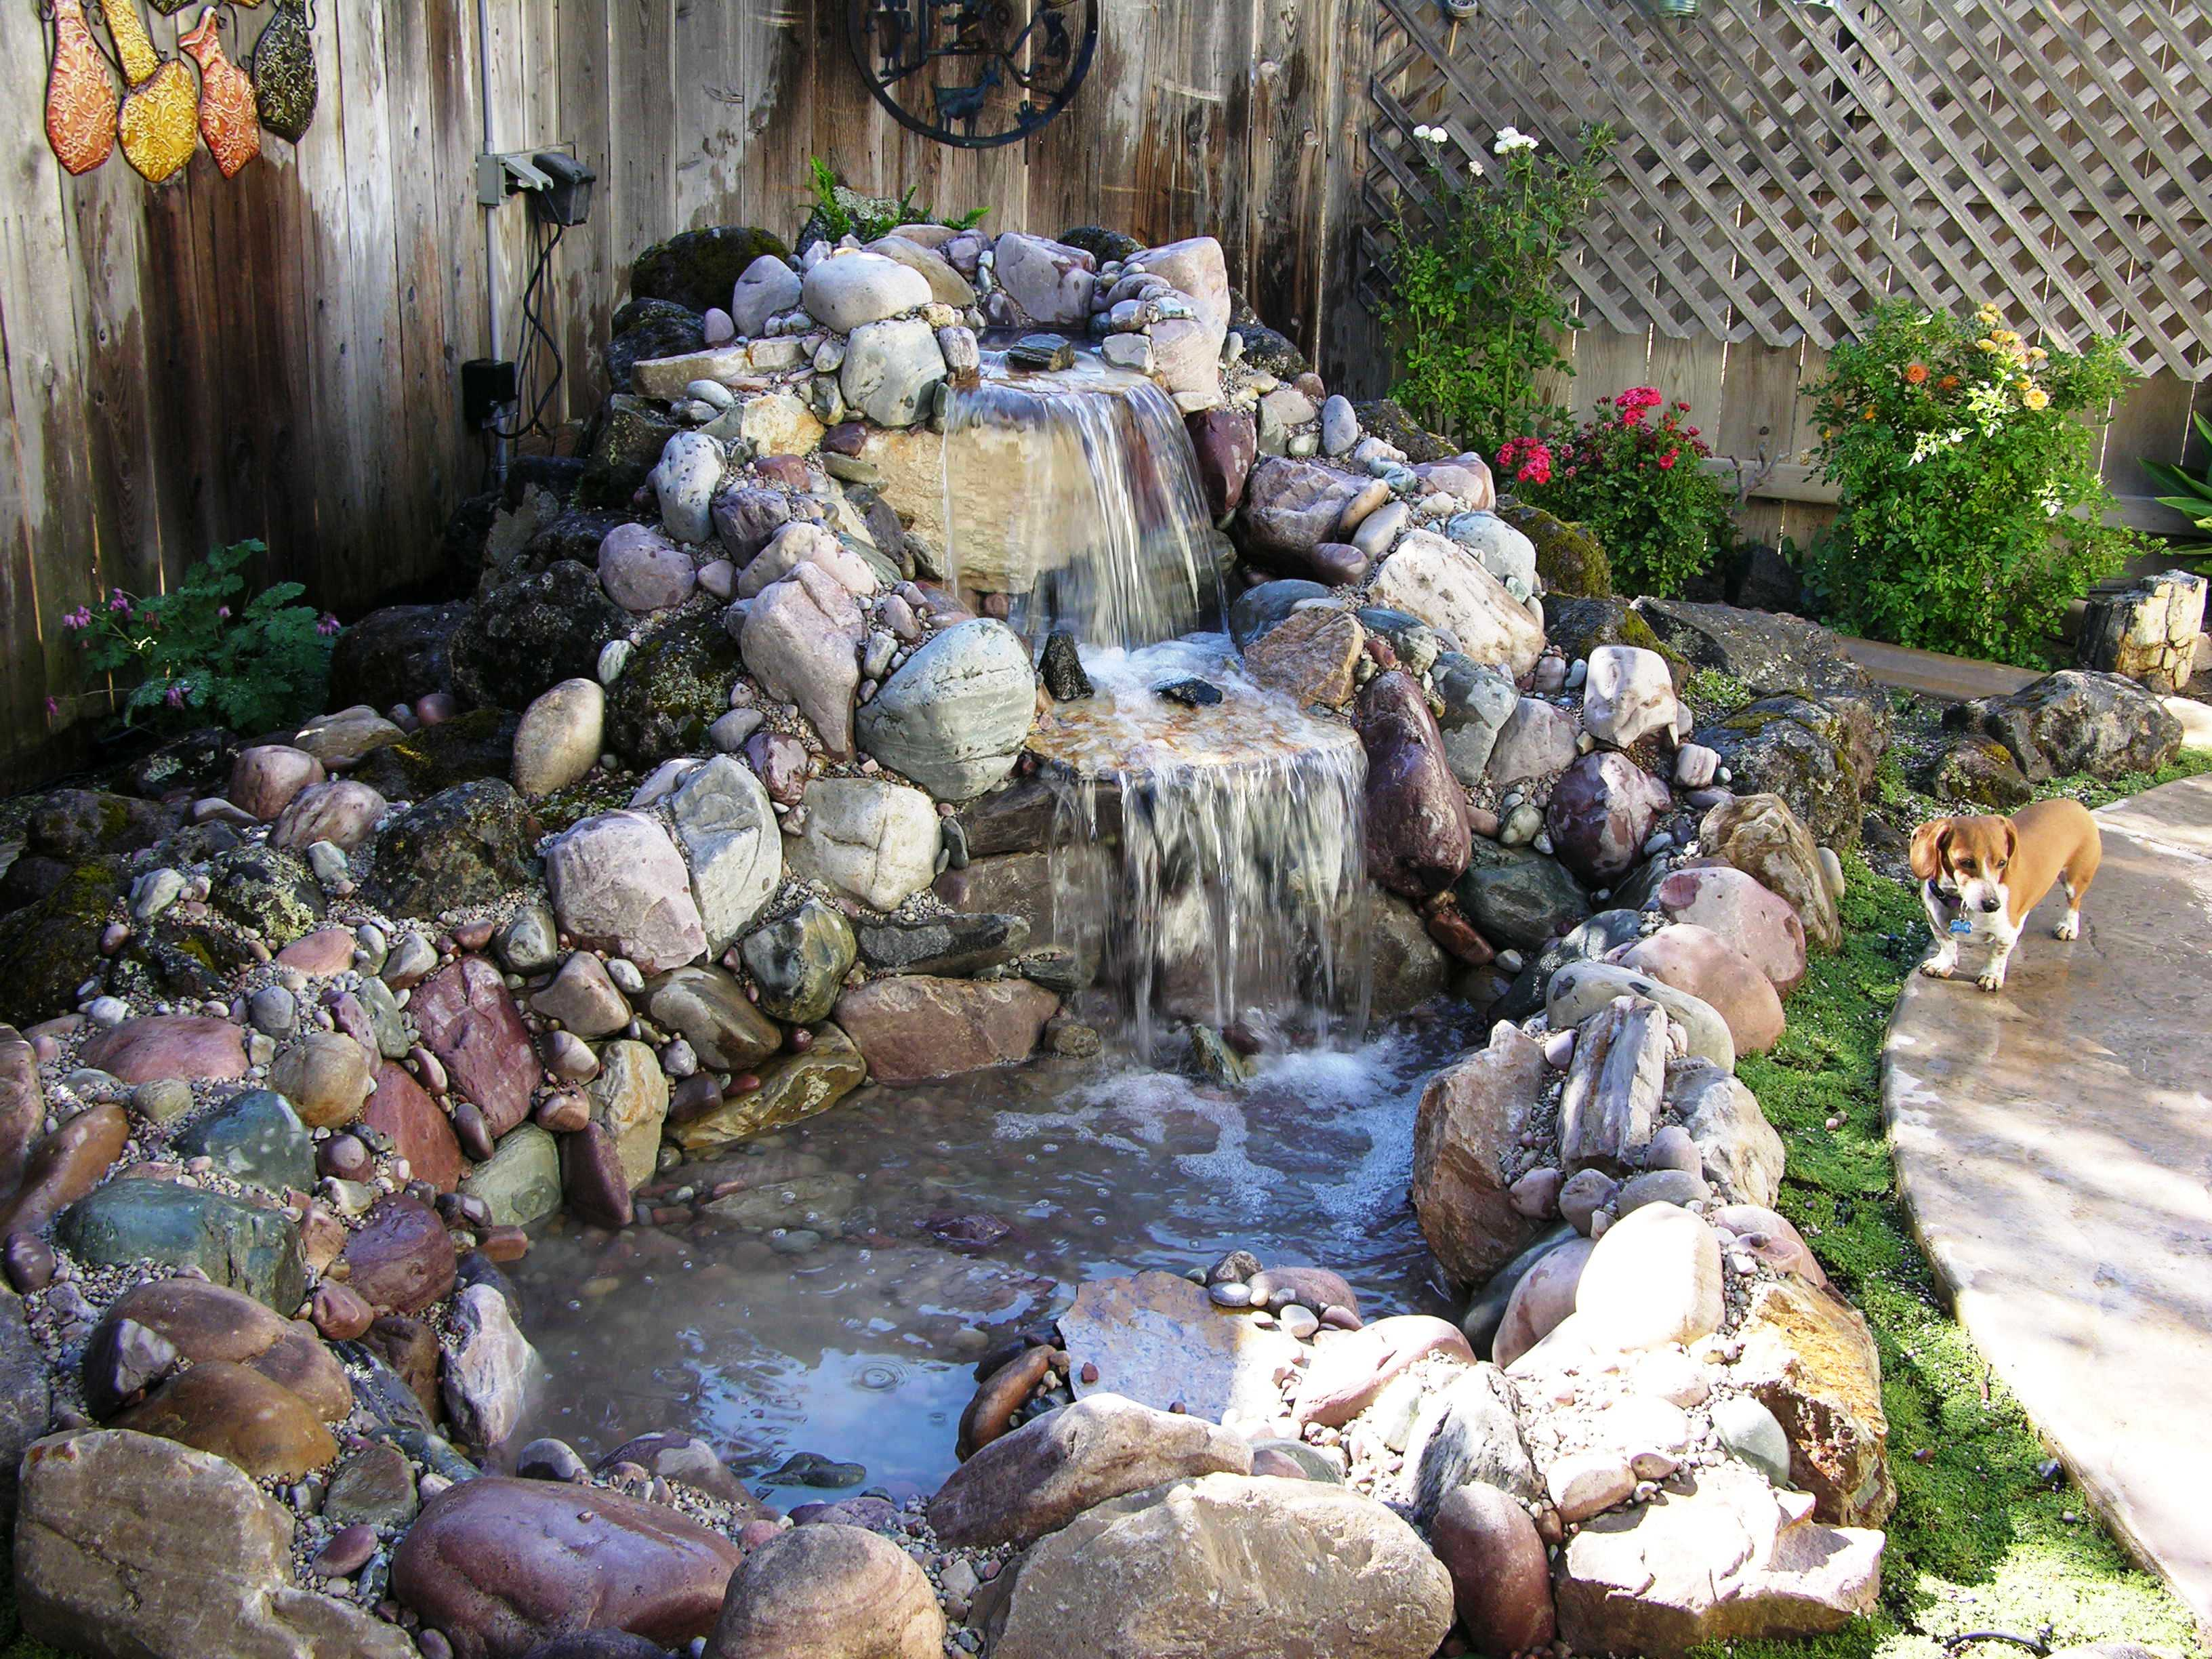 Larry bender 39 s landscaping about us Backyard pond ideas with waterfall